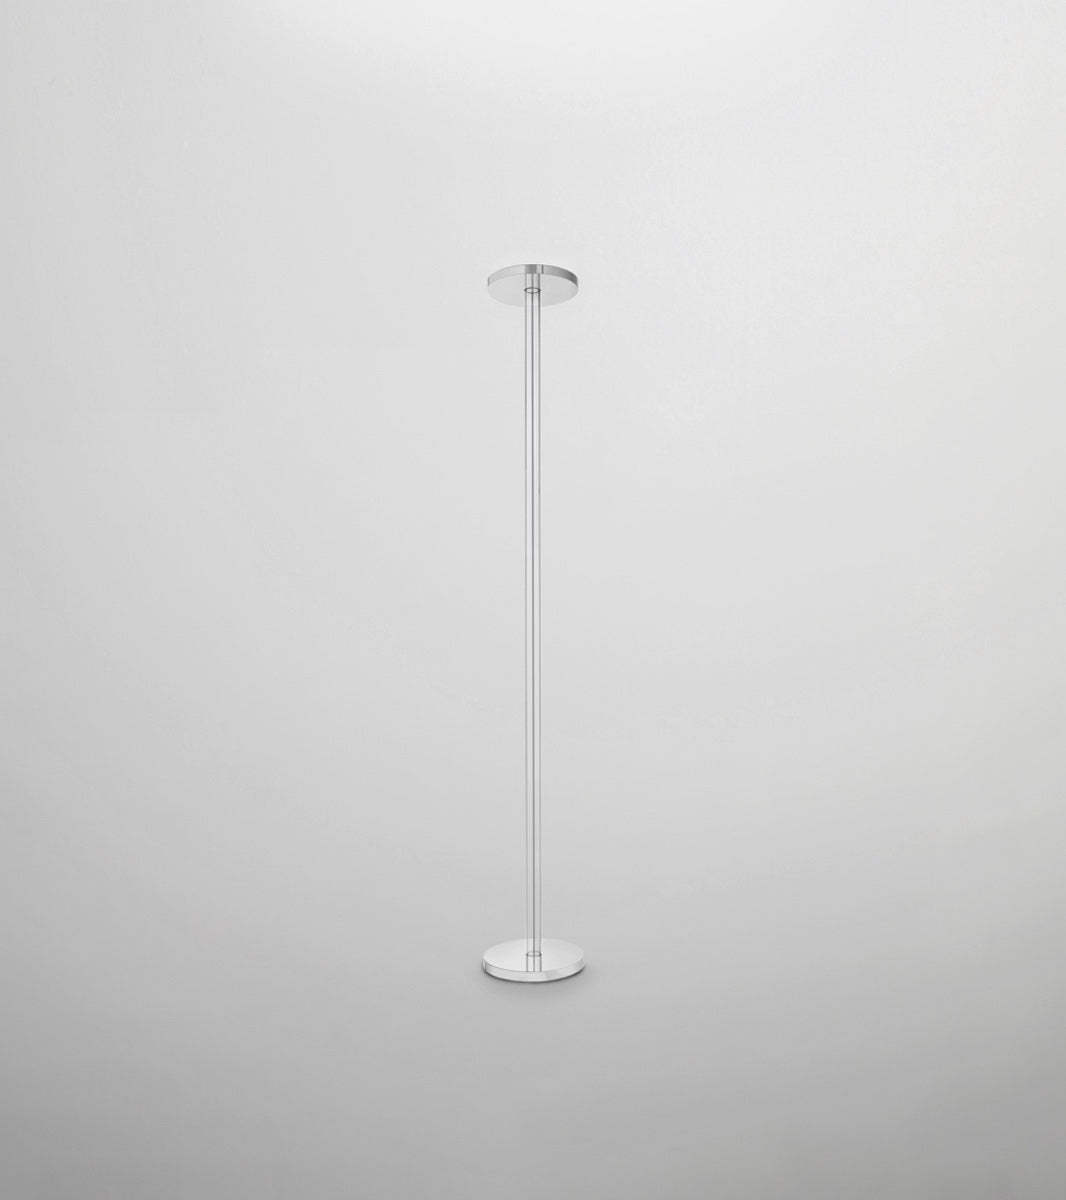 In Between Light <br> by Michael Anastassiades